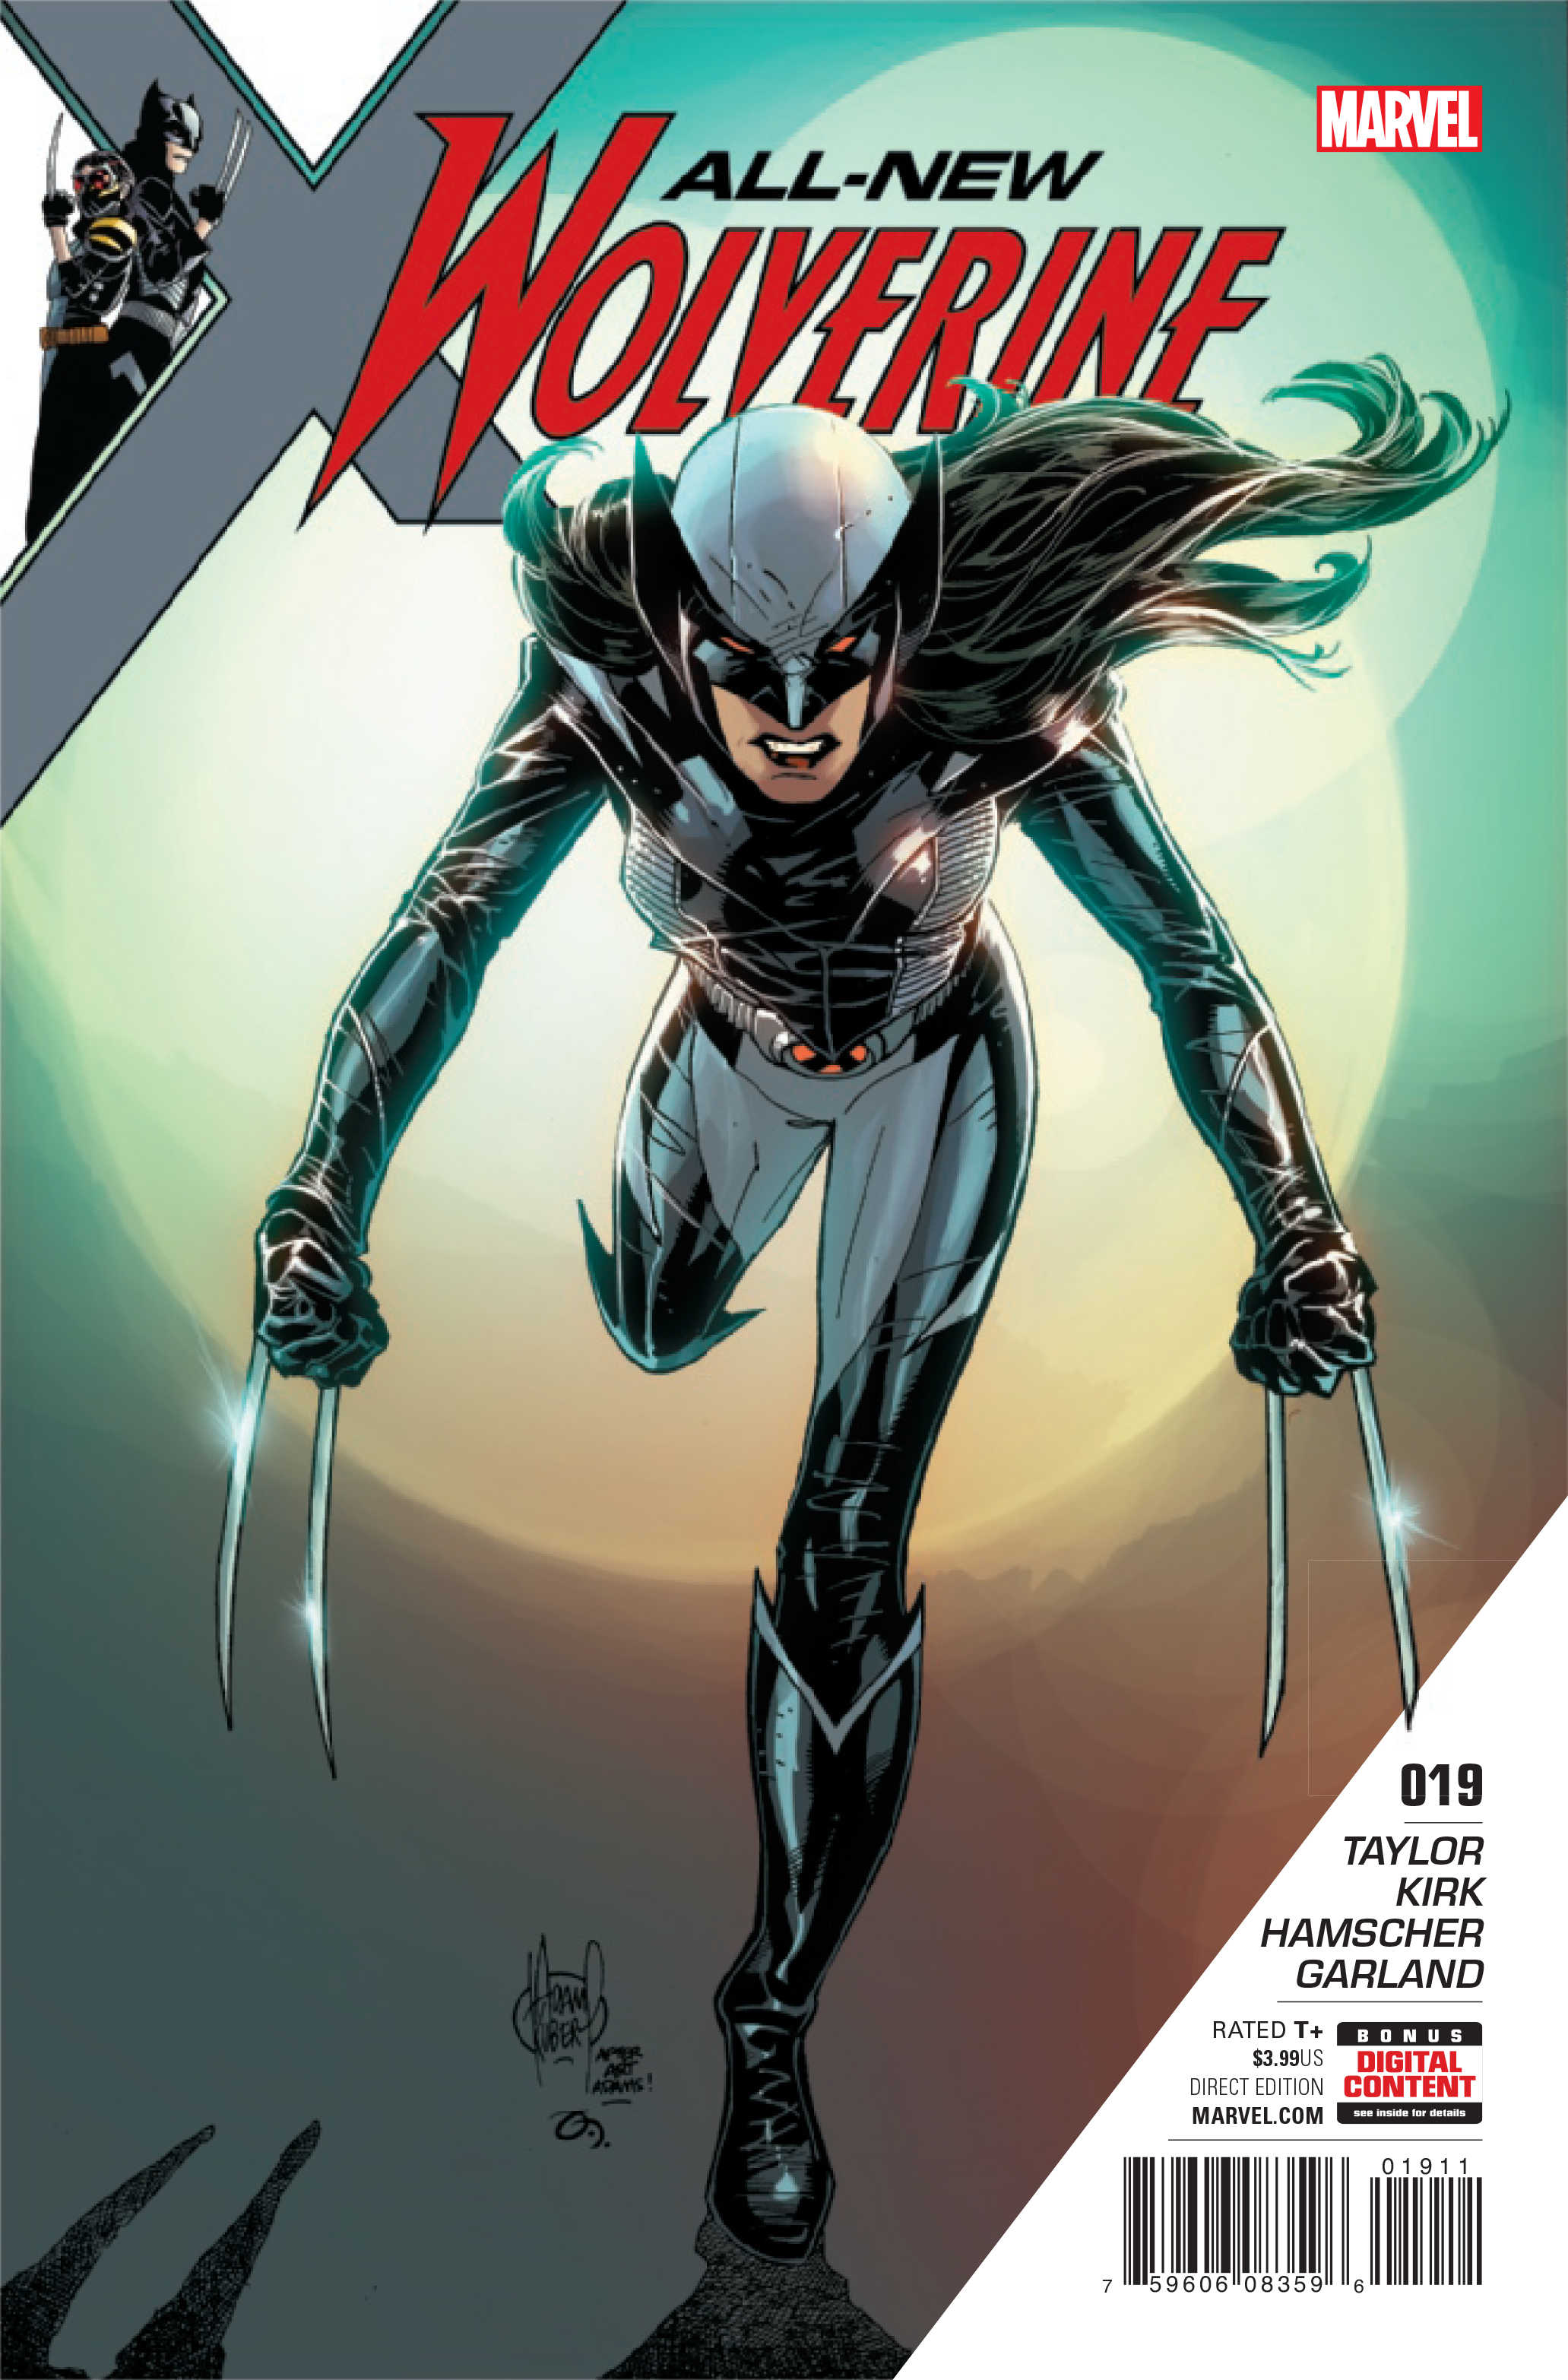 ALL NEW WOLVERINE #19